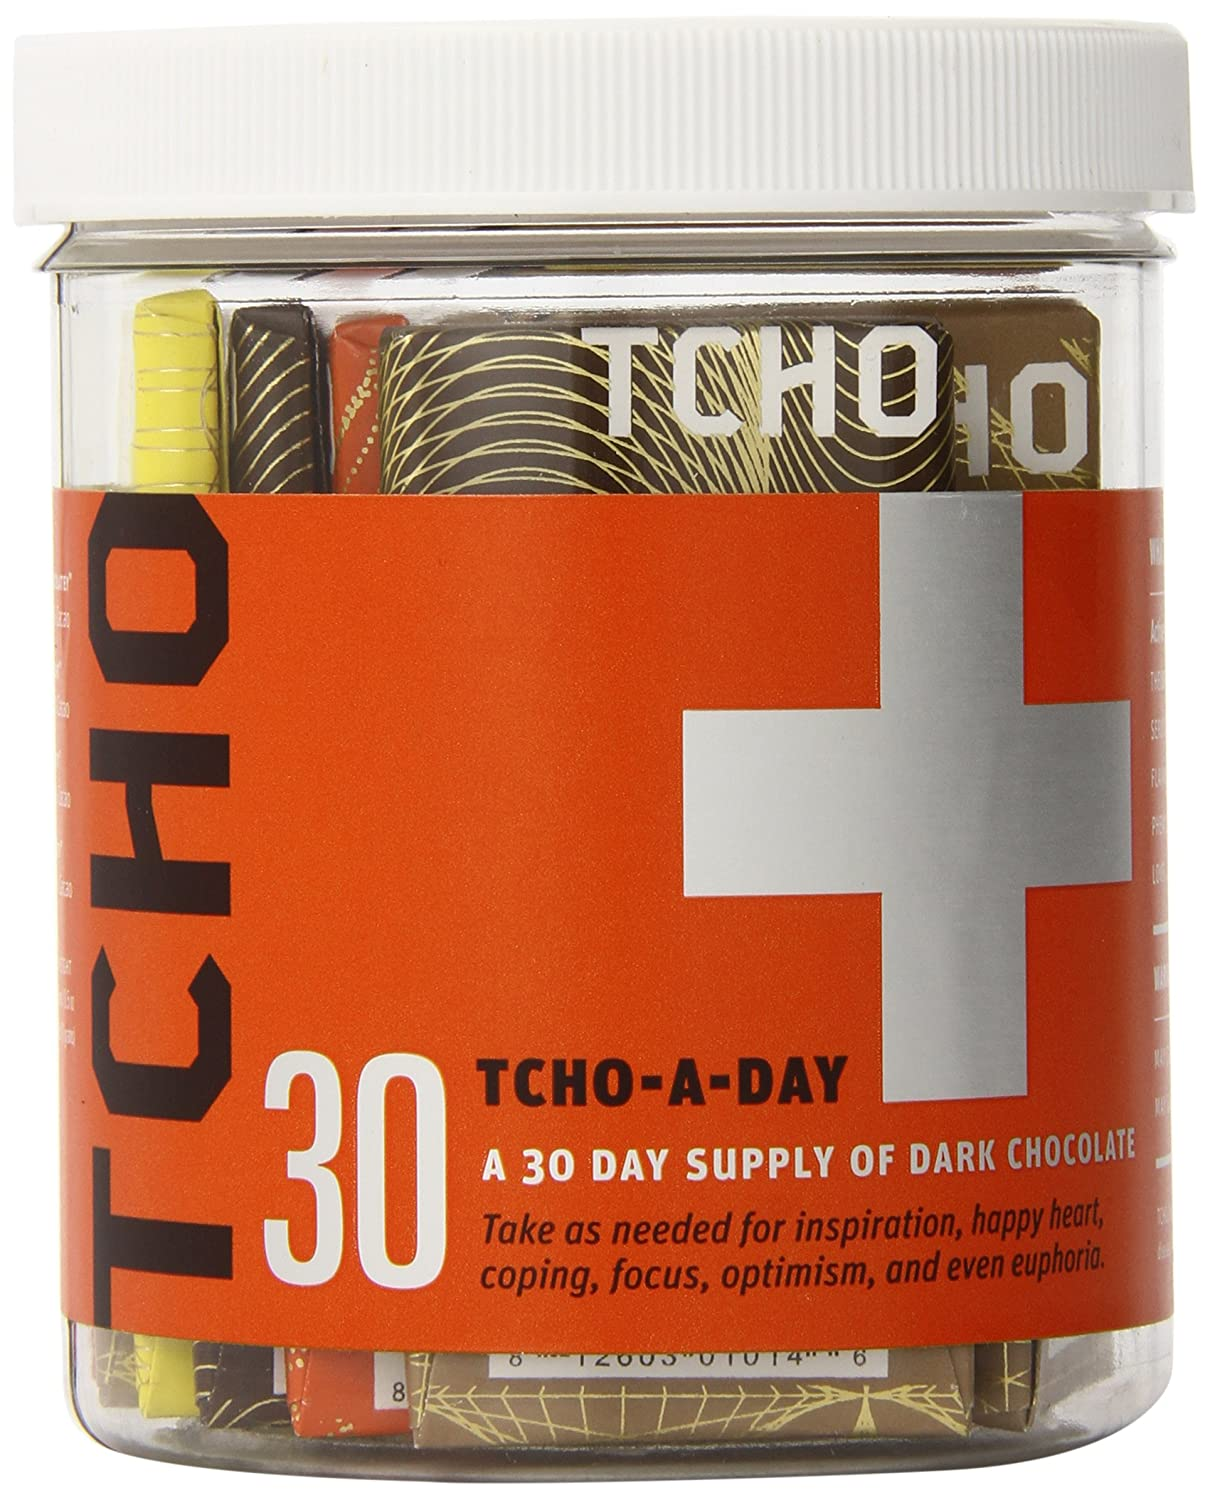 Amazon.com : TCHO Chocolate Bar, Tcho-a-Day, 30 Count : Chocolate ...